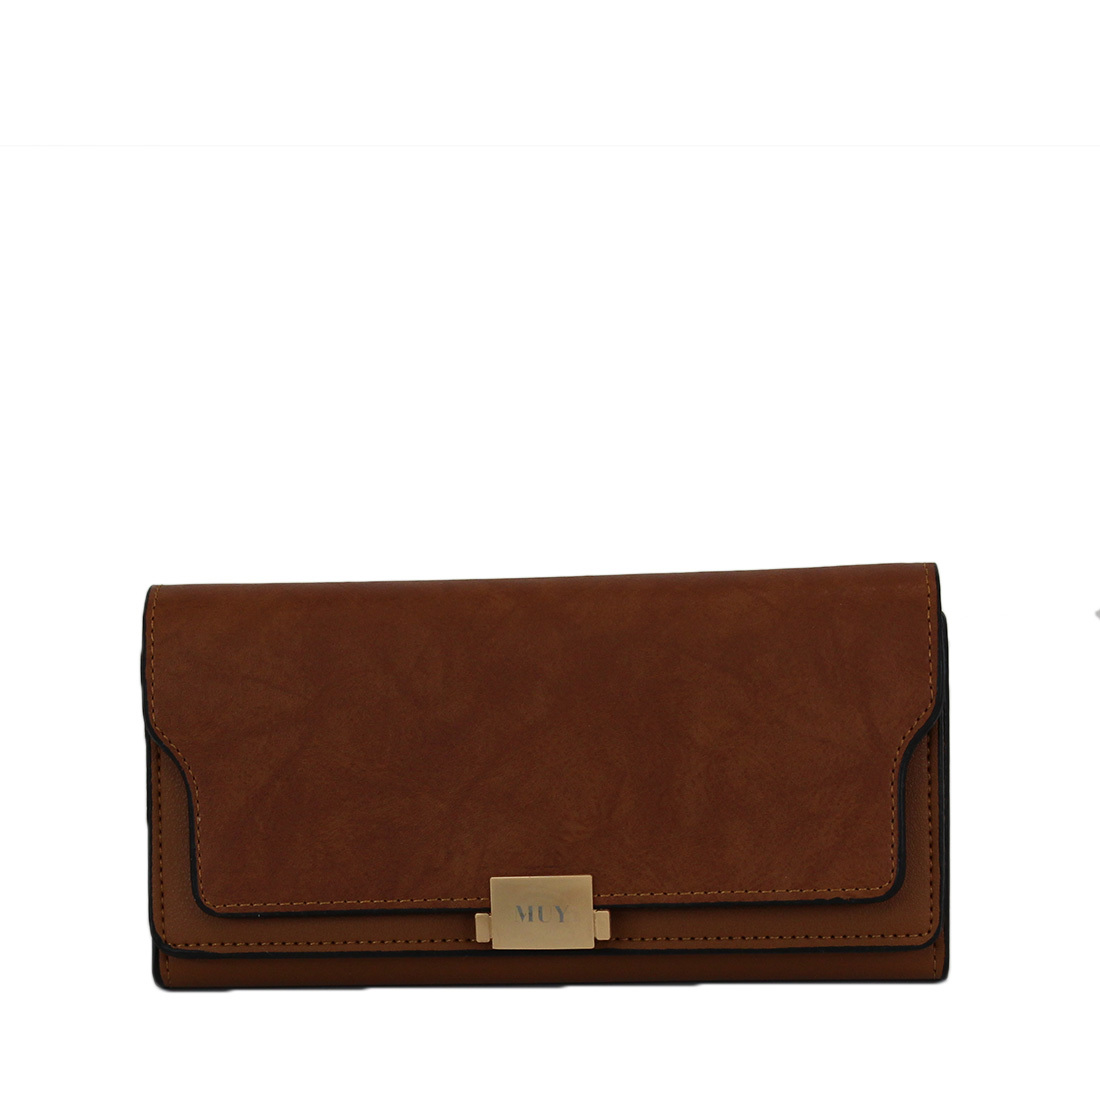 Leather double folded purse with muy trim